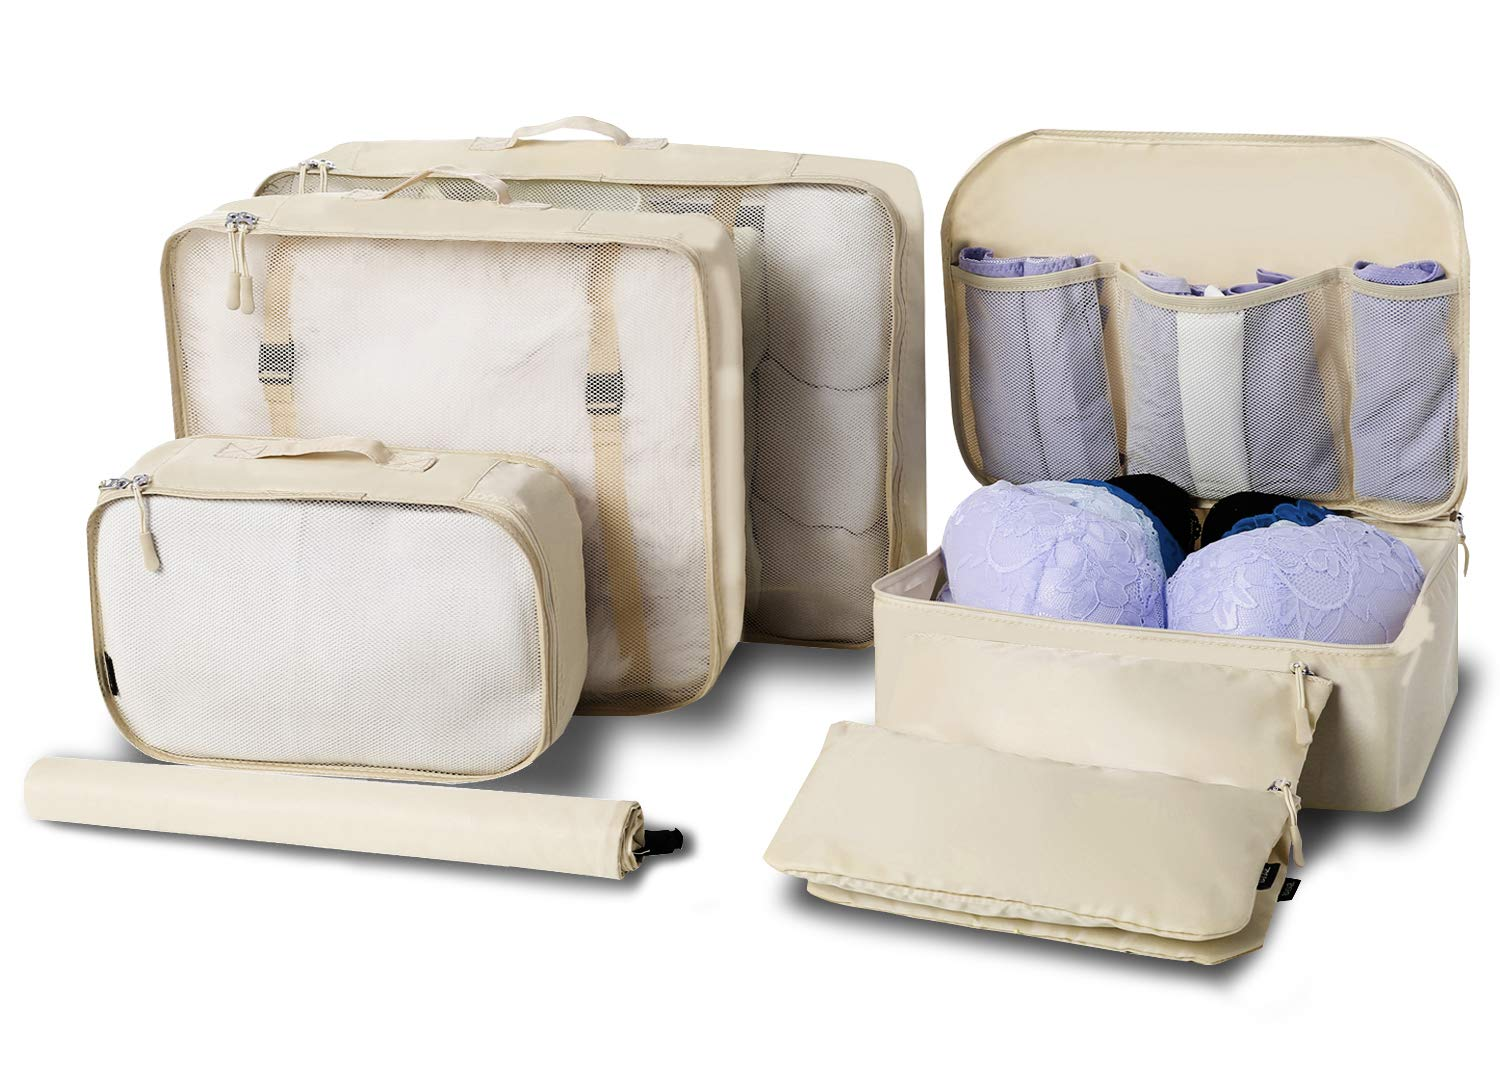 BAGAIL 7-Pcs Lightweight Luggage Packing Organizers Packing Cubes for Travel Accessories Beige